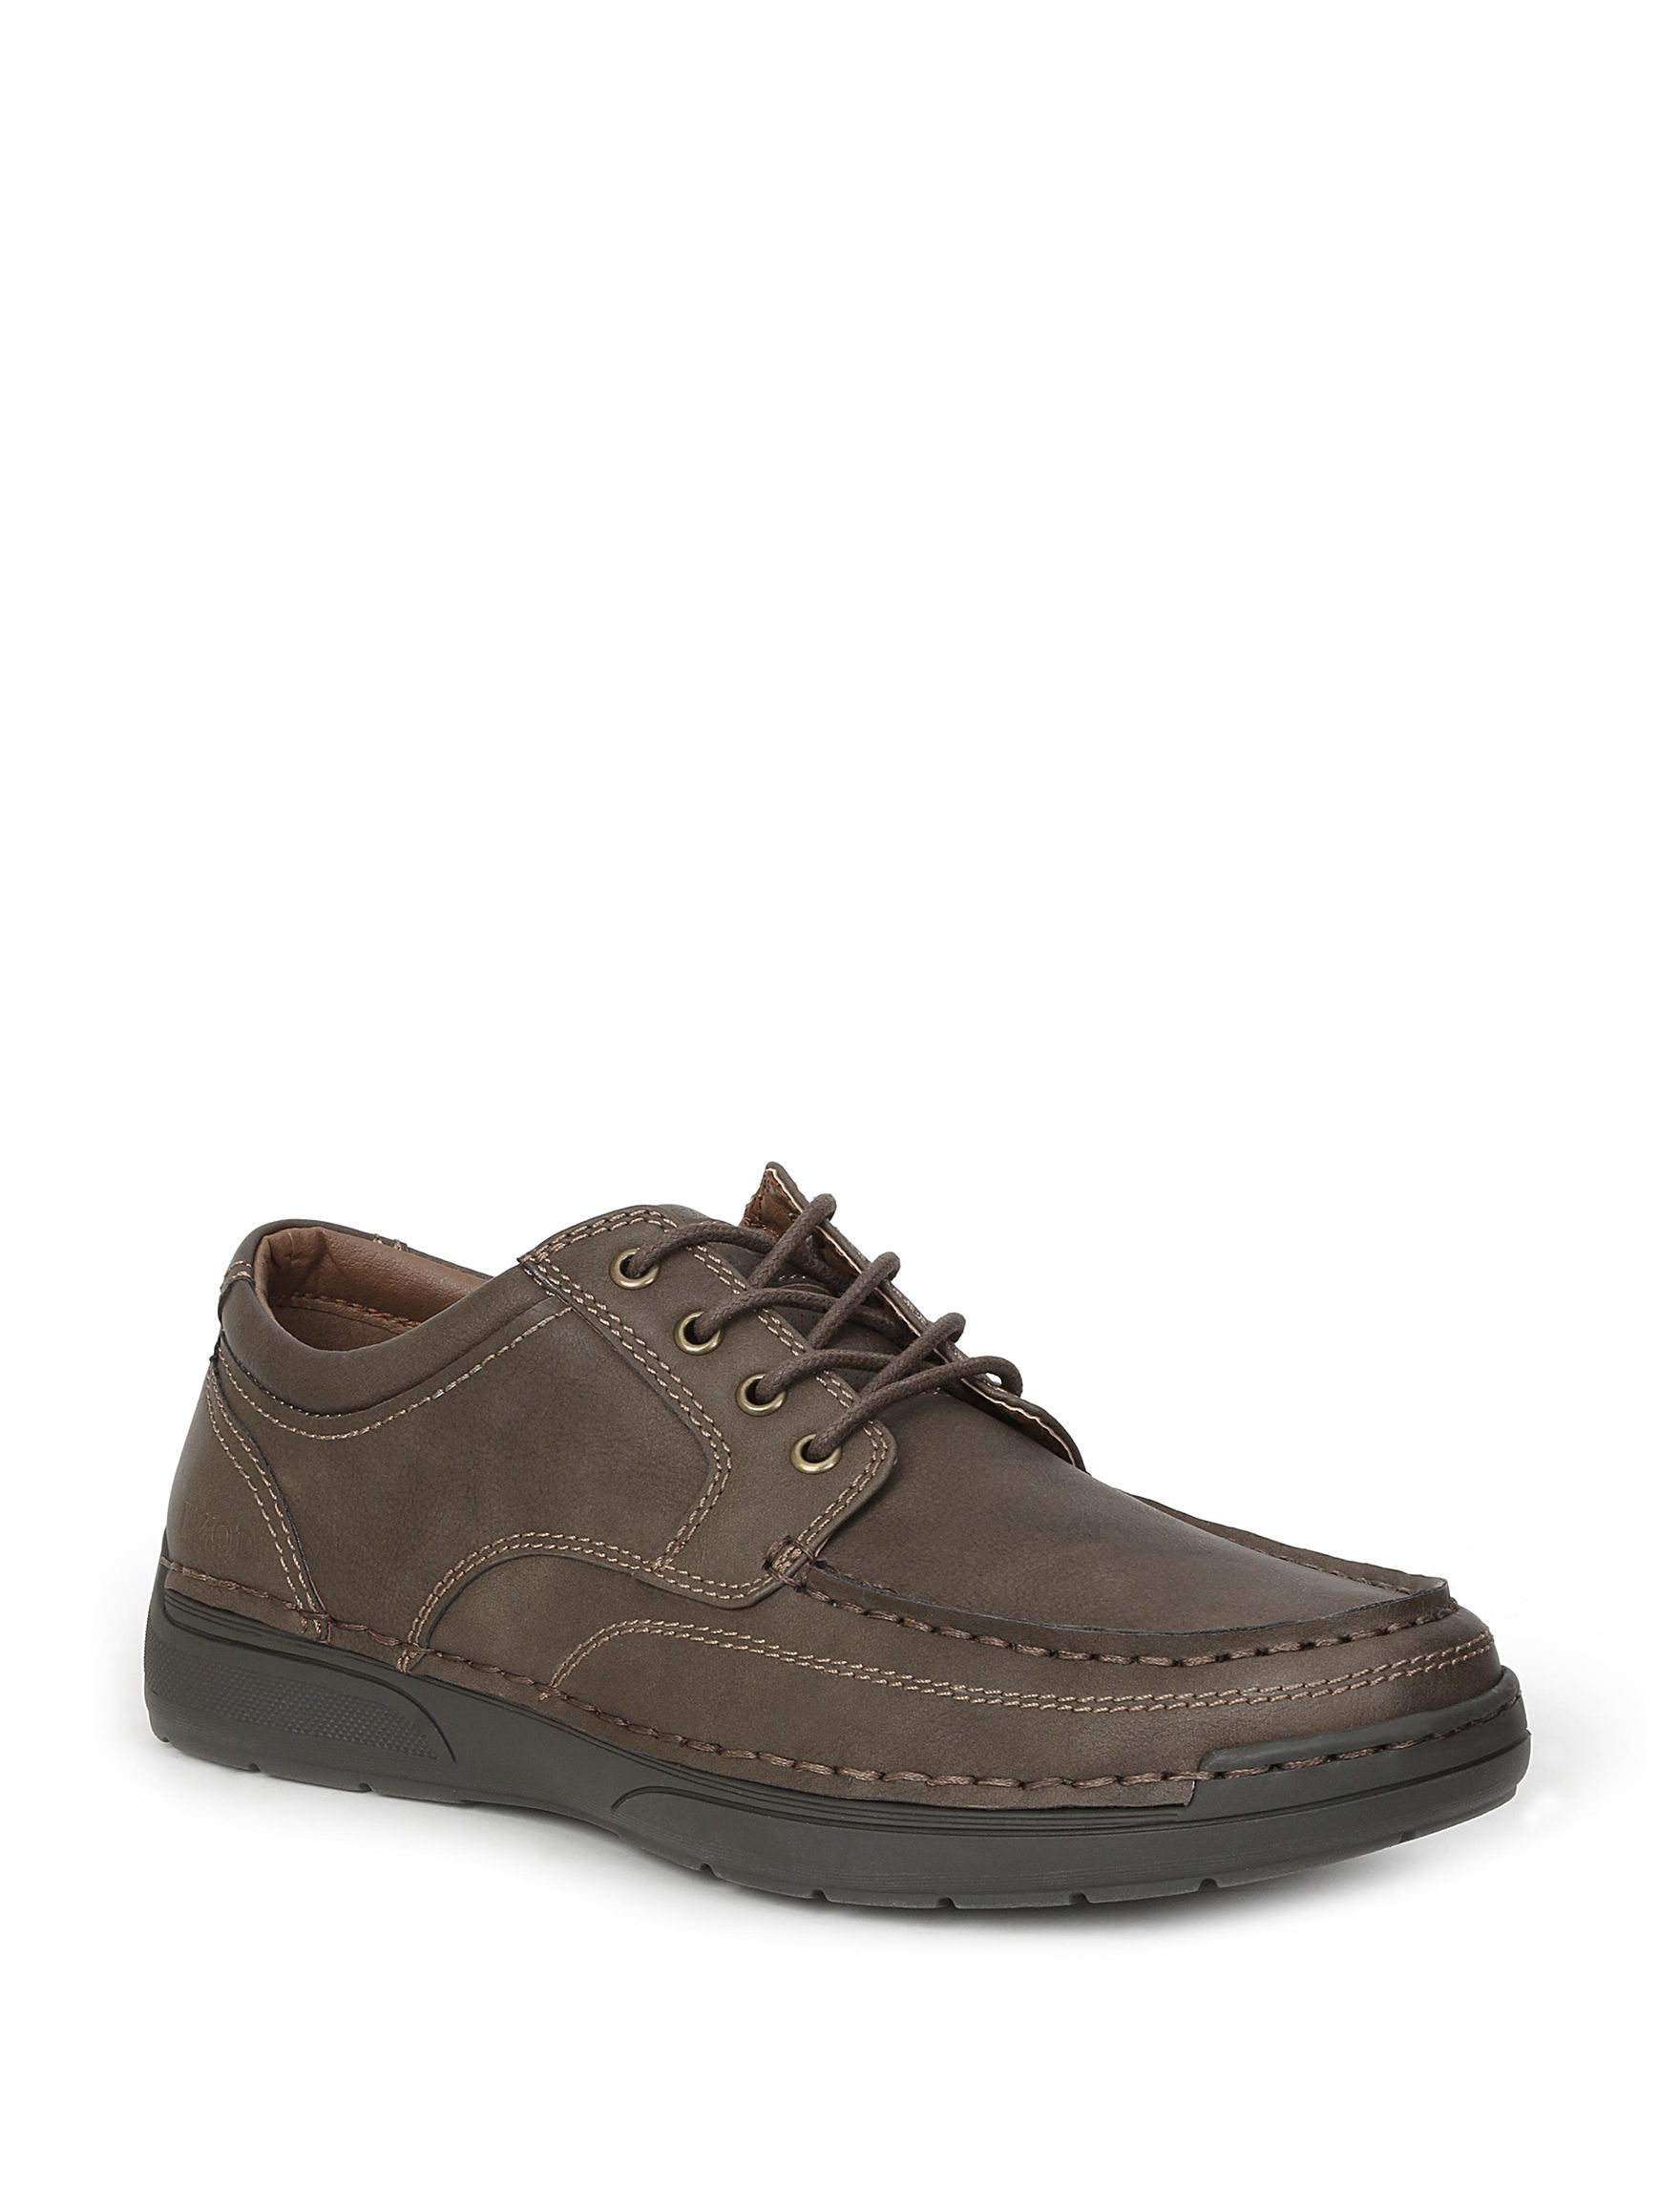 Izod Dark Brown